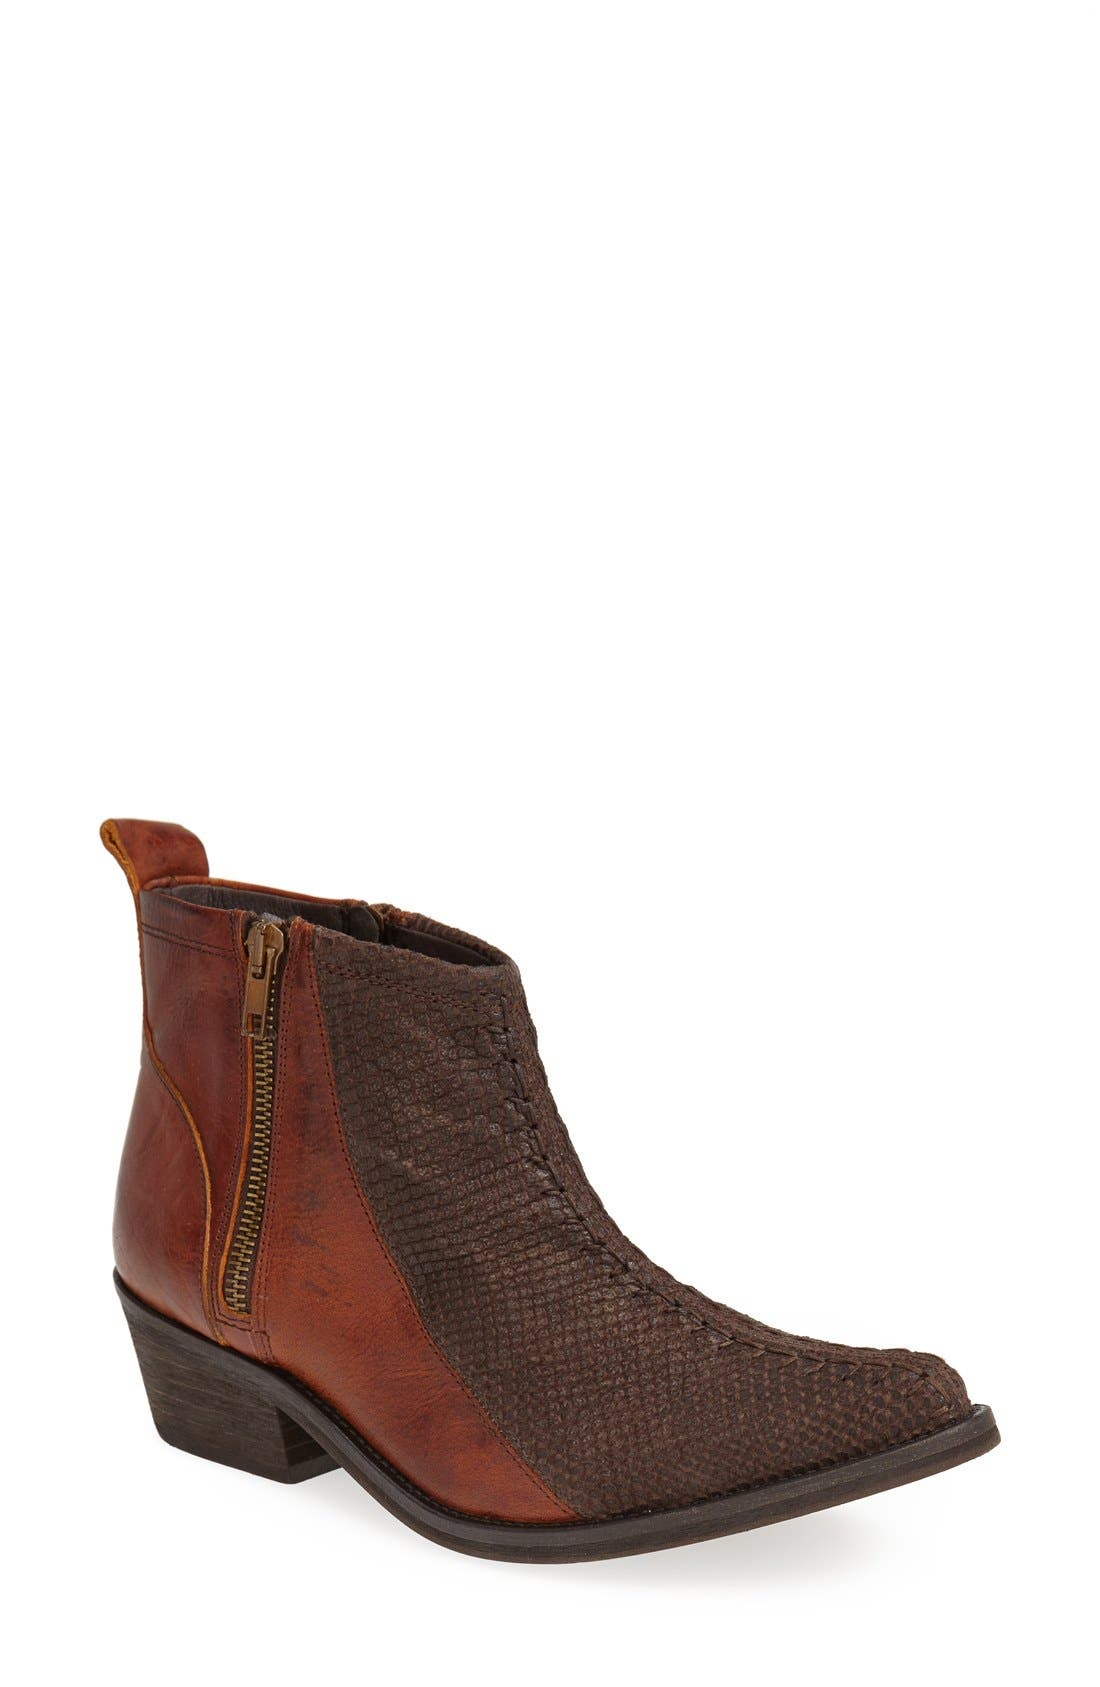 Alternate Image 1 Selected - Free People 'Flying Ranch' Pointy Toe Bootie (Women)